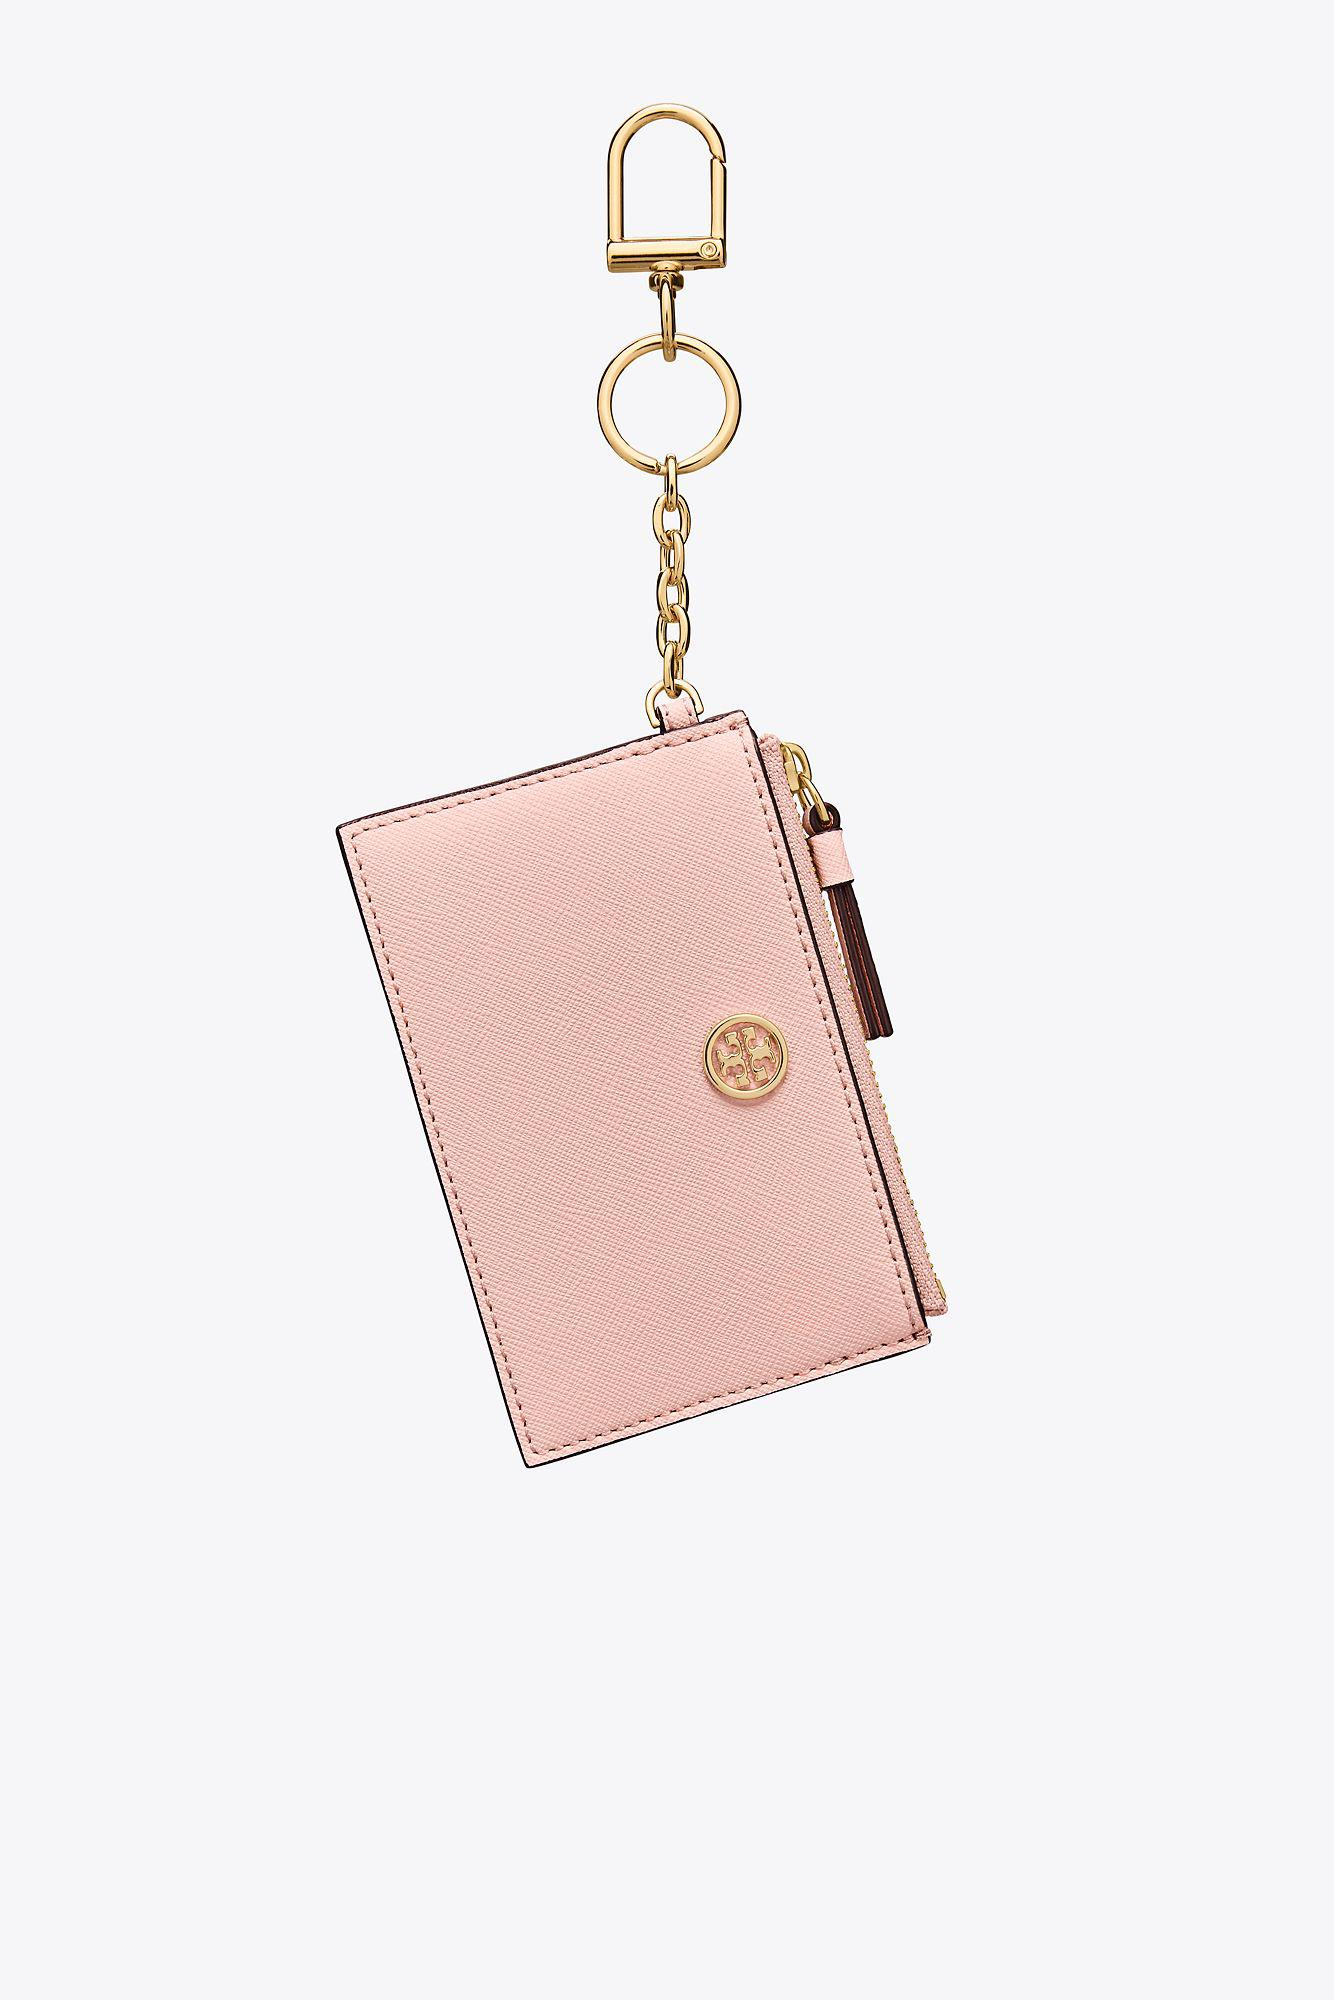 online retailer 20936 b45f5 Tory Burch Pink Robinson Card Case